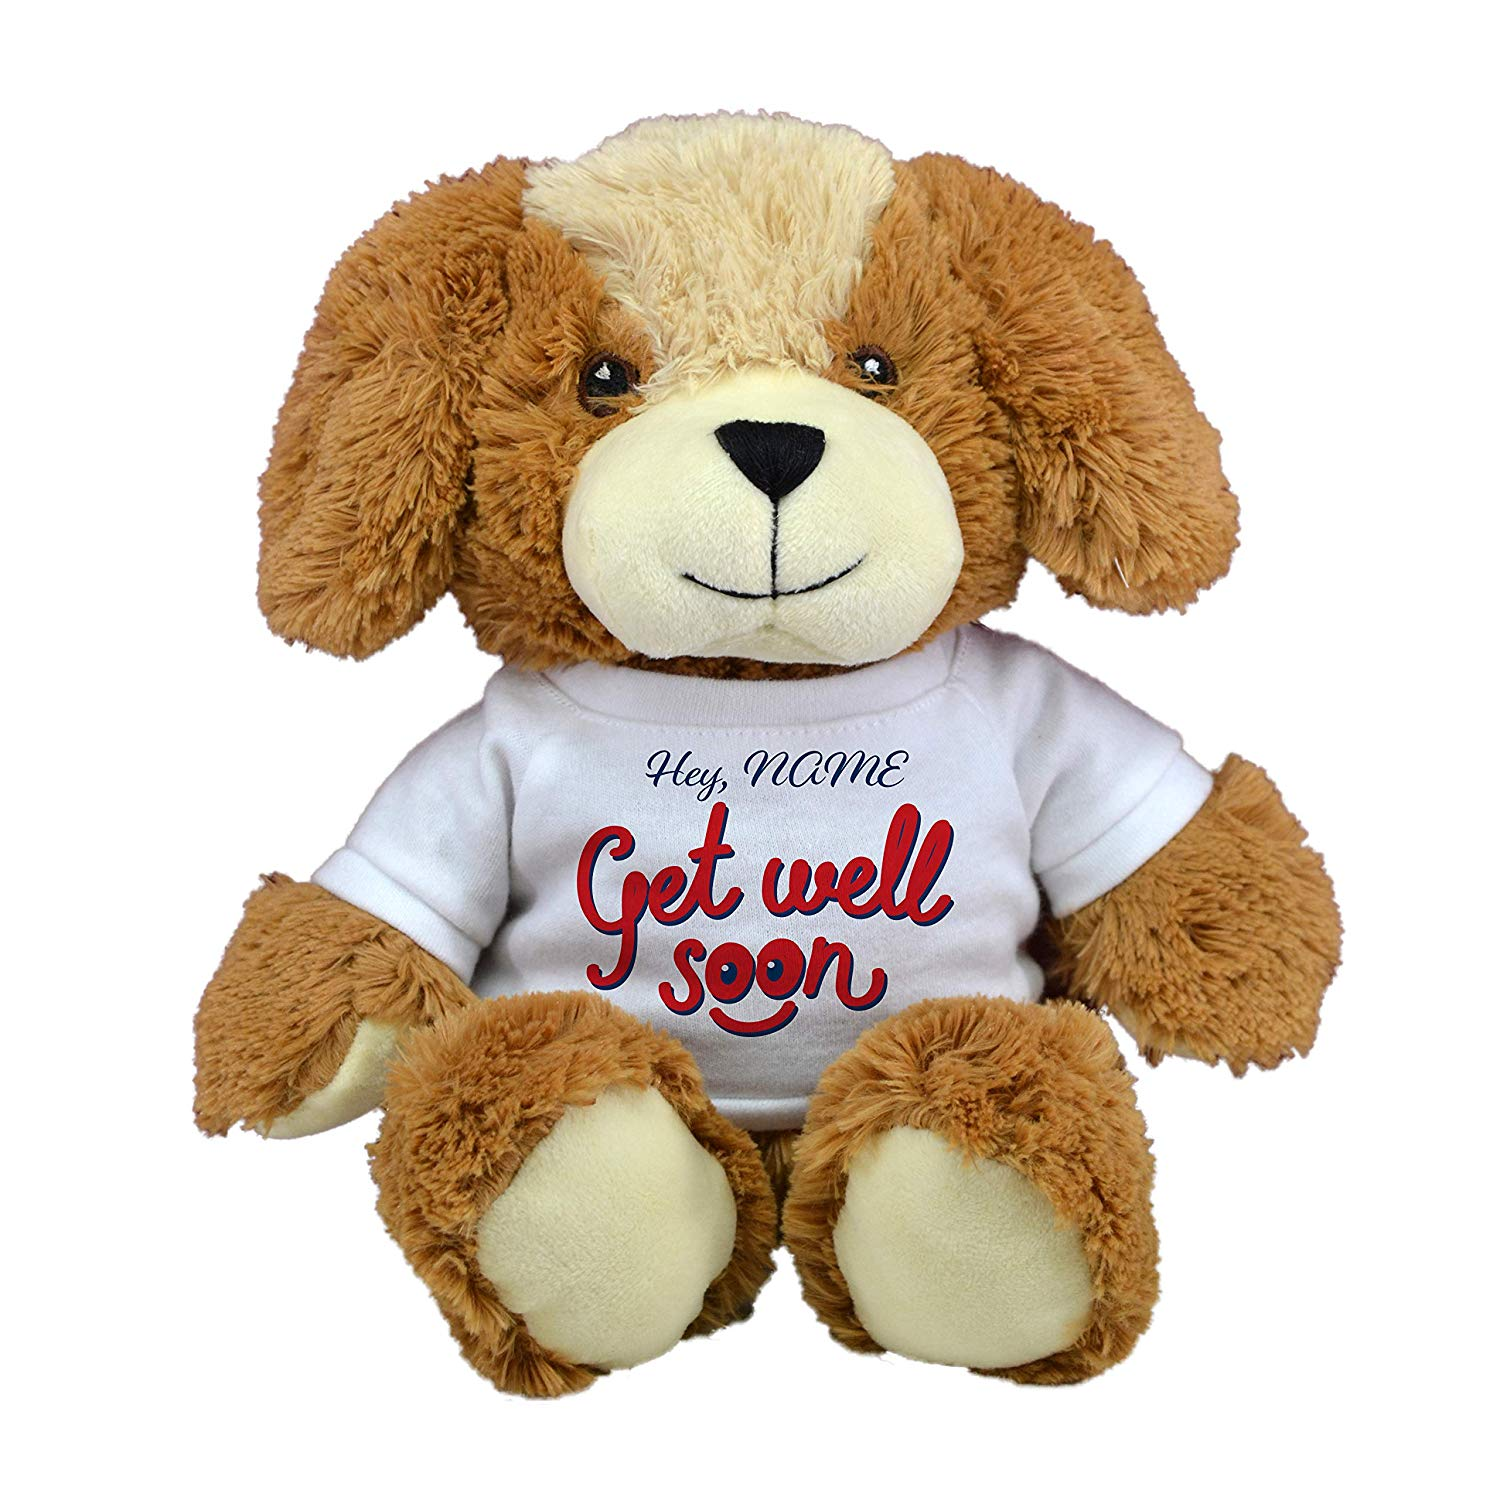 Cute Teddy Bear Plush Toys with Personalized Names